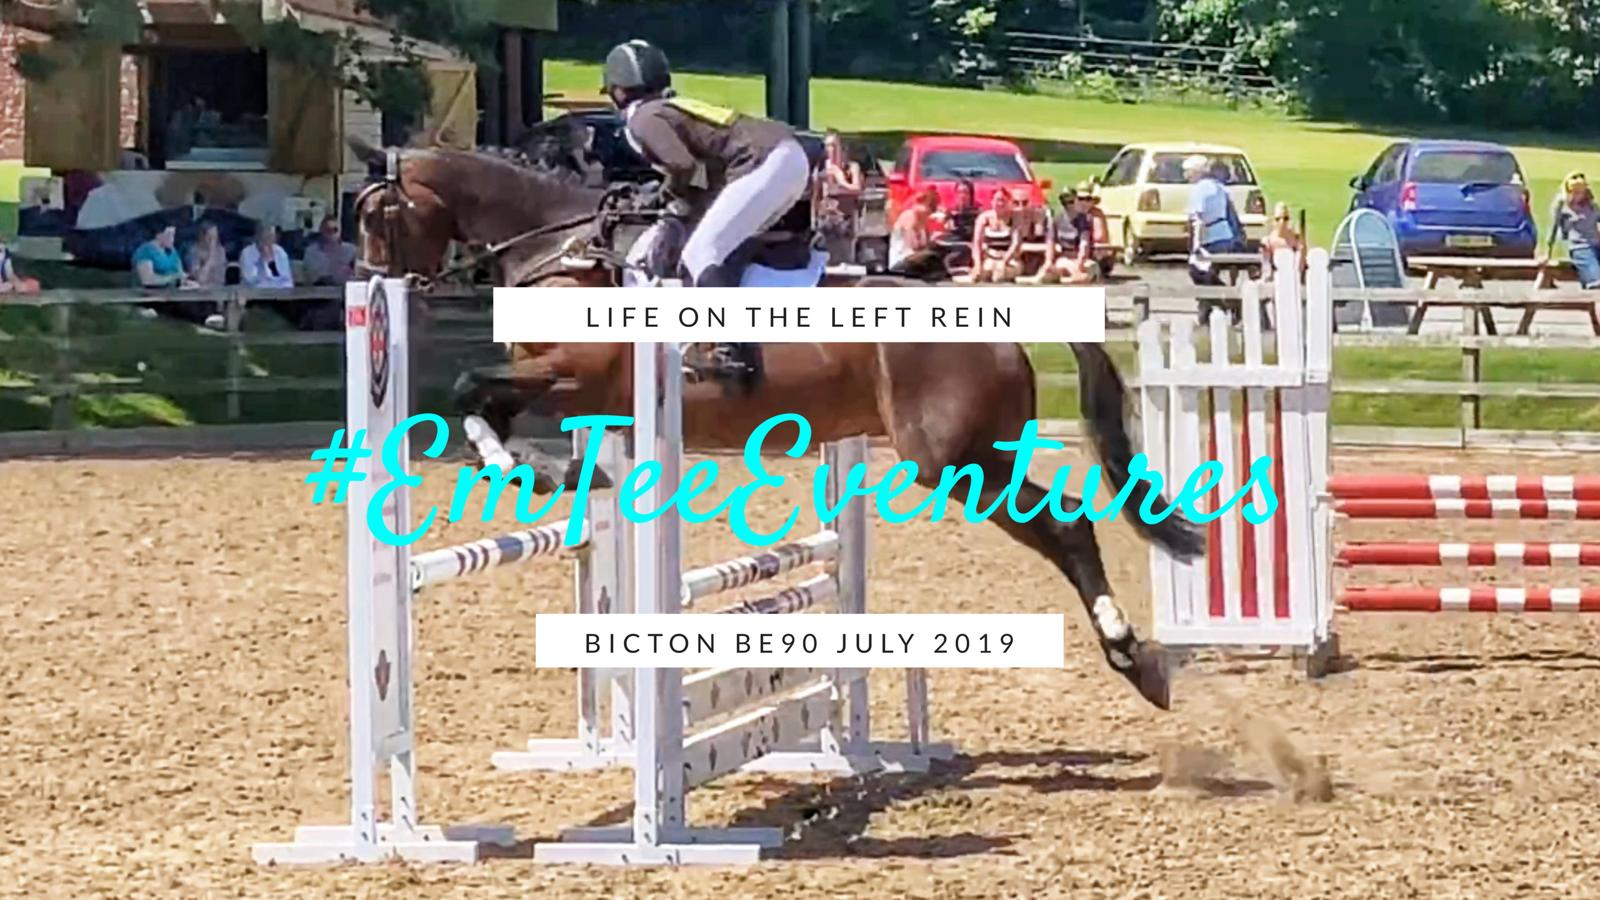 BICTON BE90 July 2019